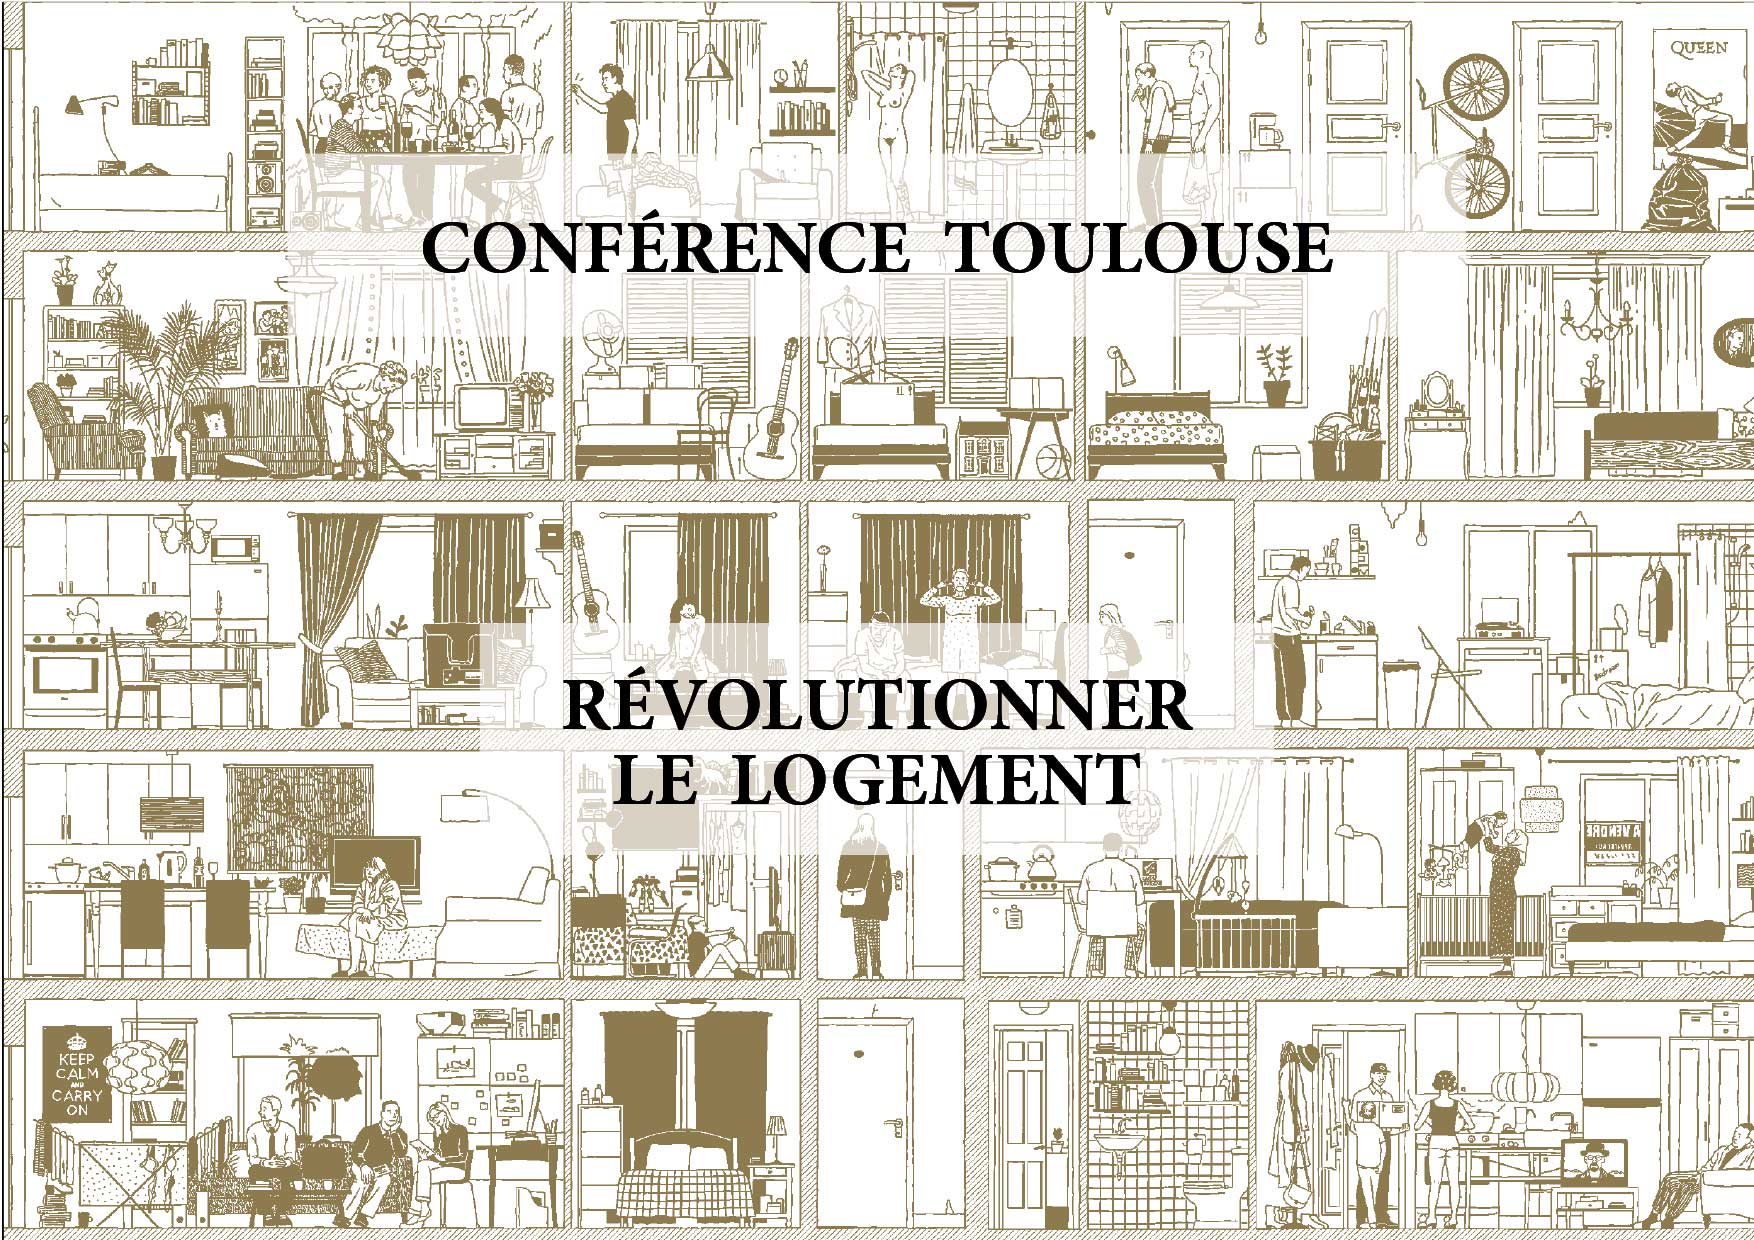 """Beatriz Ramo will give a Lecture entitled: """"Révolutionner le Logement"""" at the AMO Midi Pyrénées in Toulouse, France"""